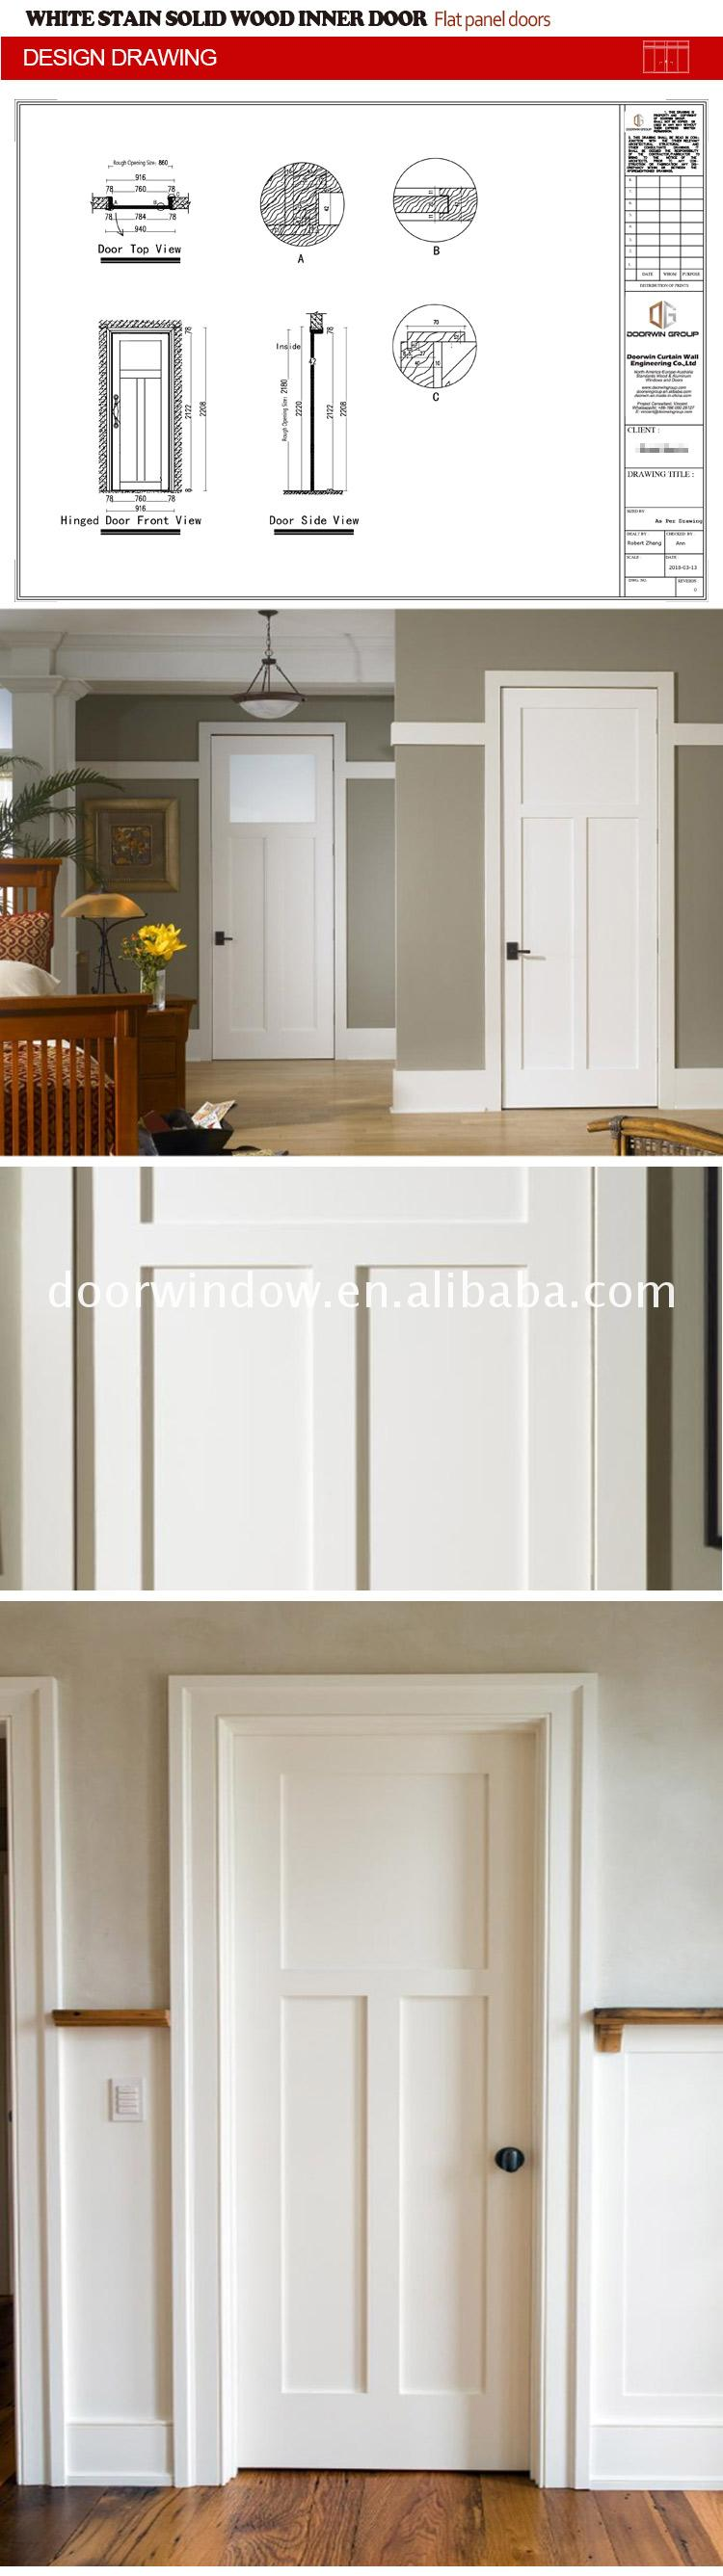 Professional factory flat panel closet doors double interior bedroom